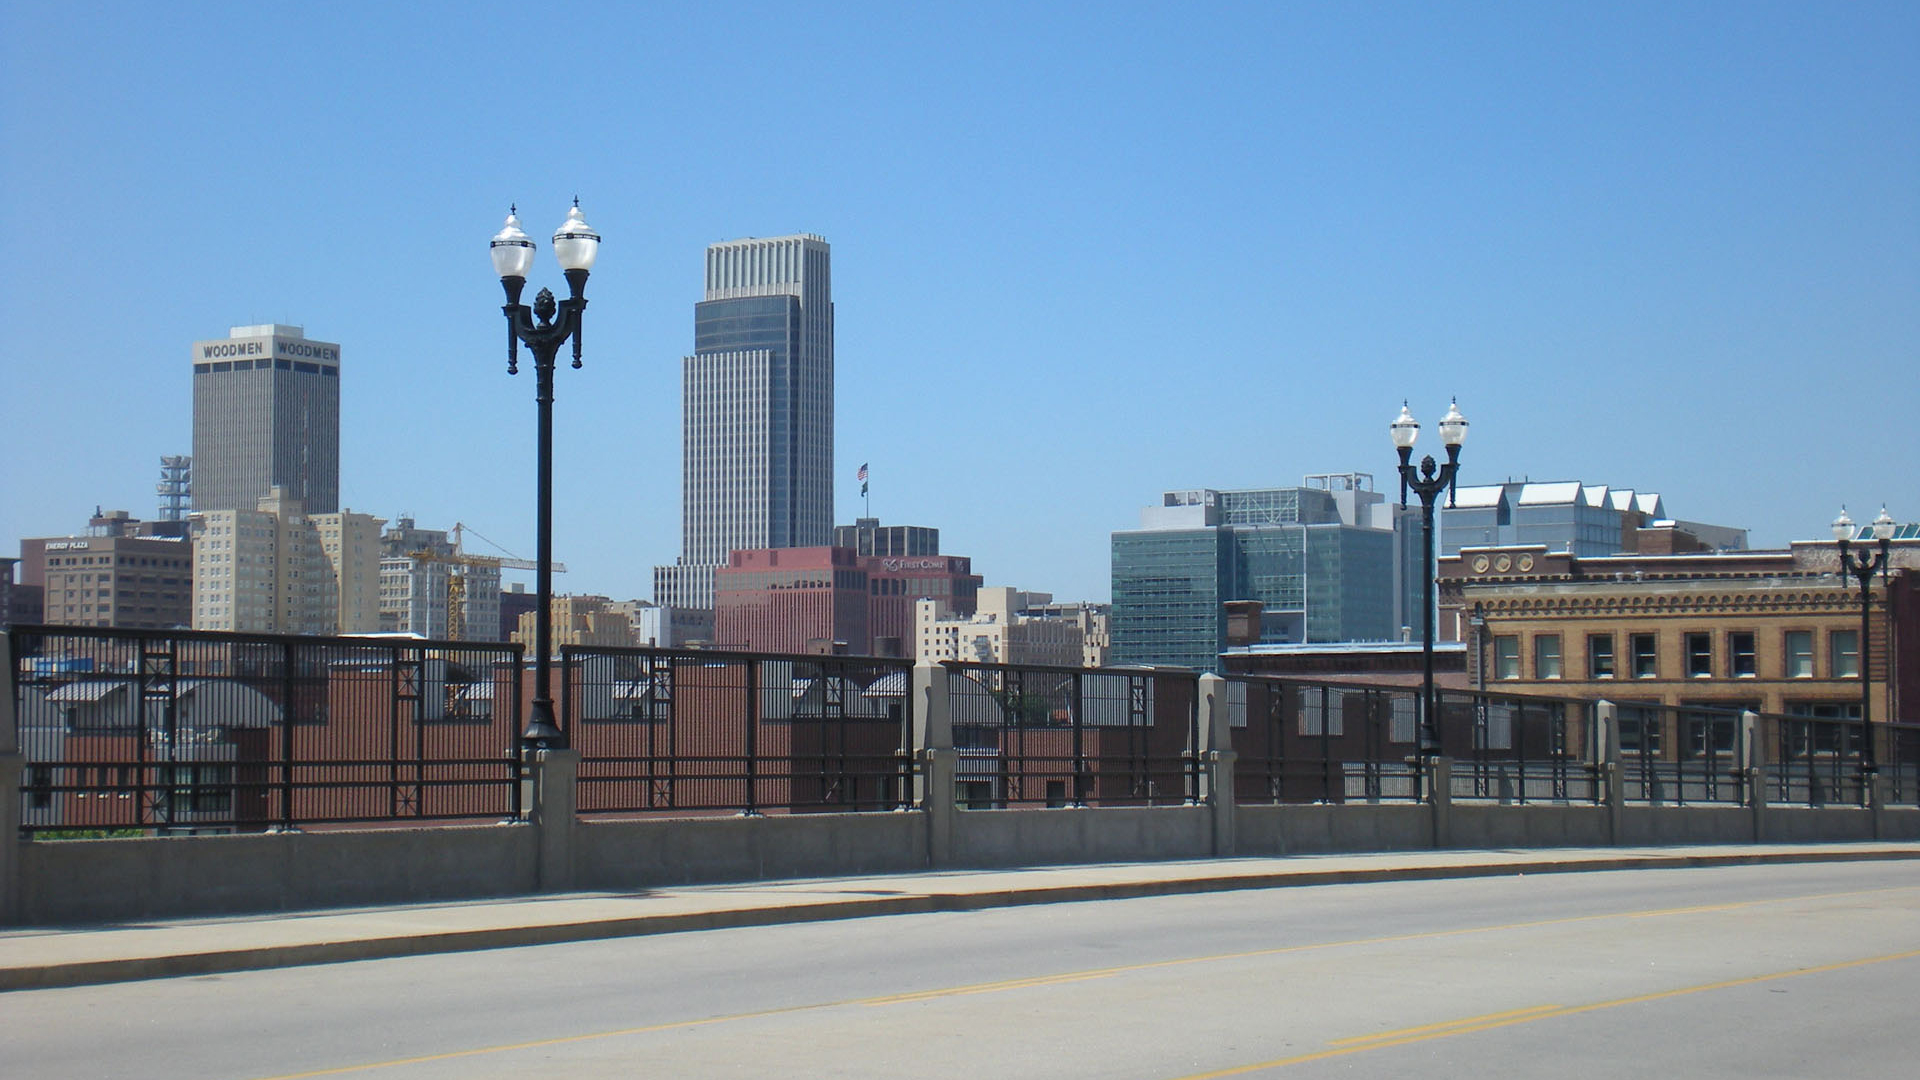 Free download omaha city skyline in city of omaha usa omaha